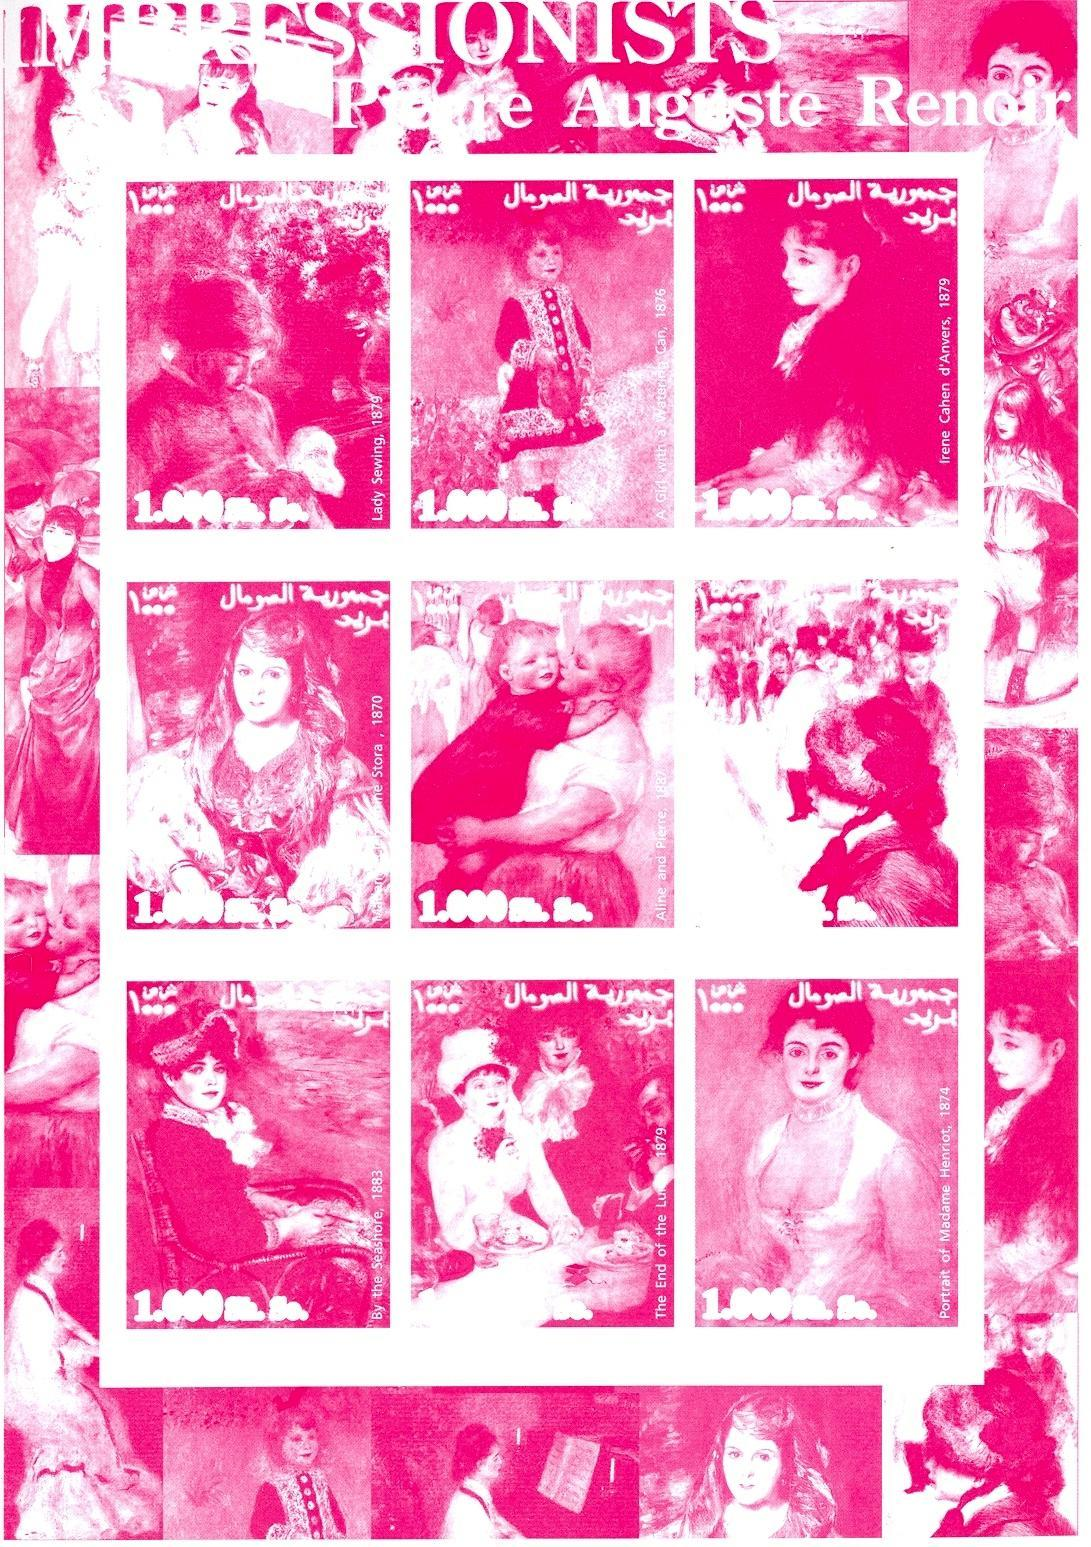 Stamps with Art, Renoir from Somalia (non official) (image for product #049743)